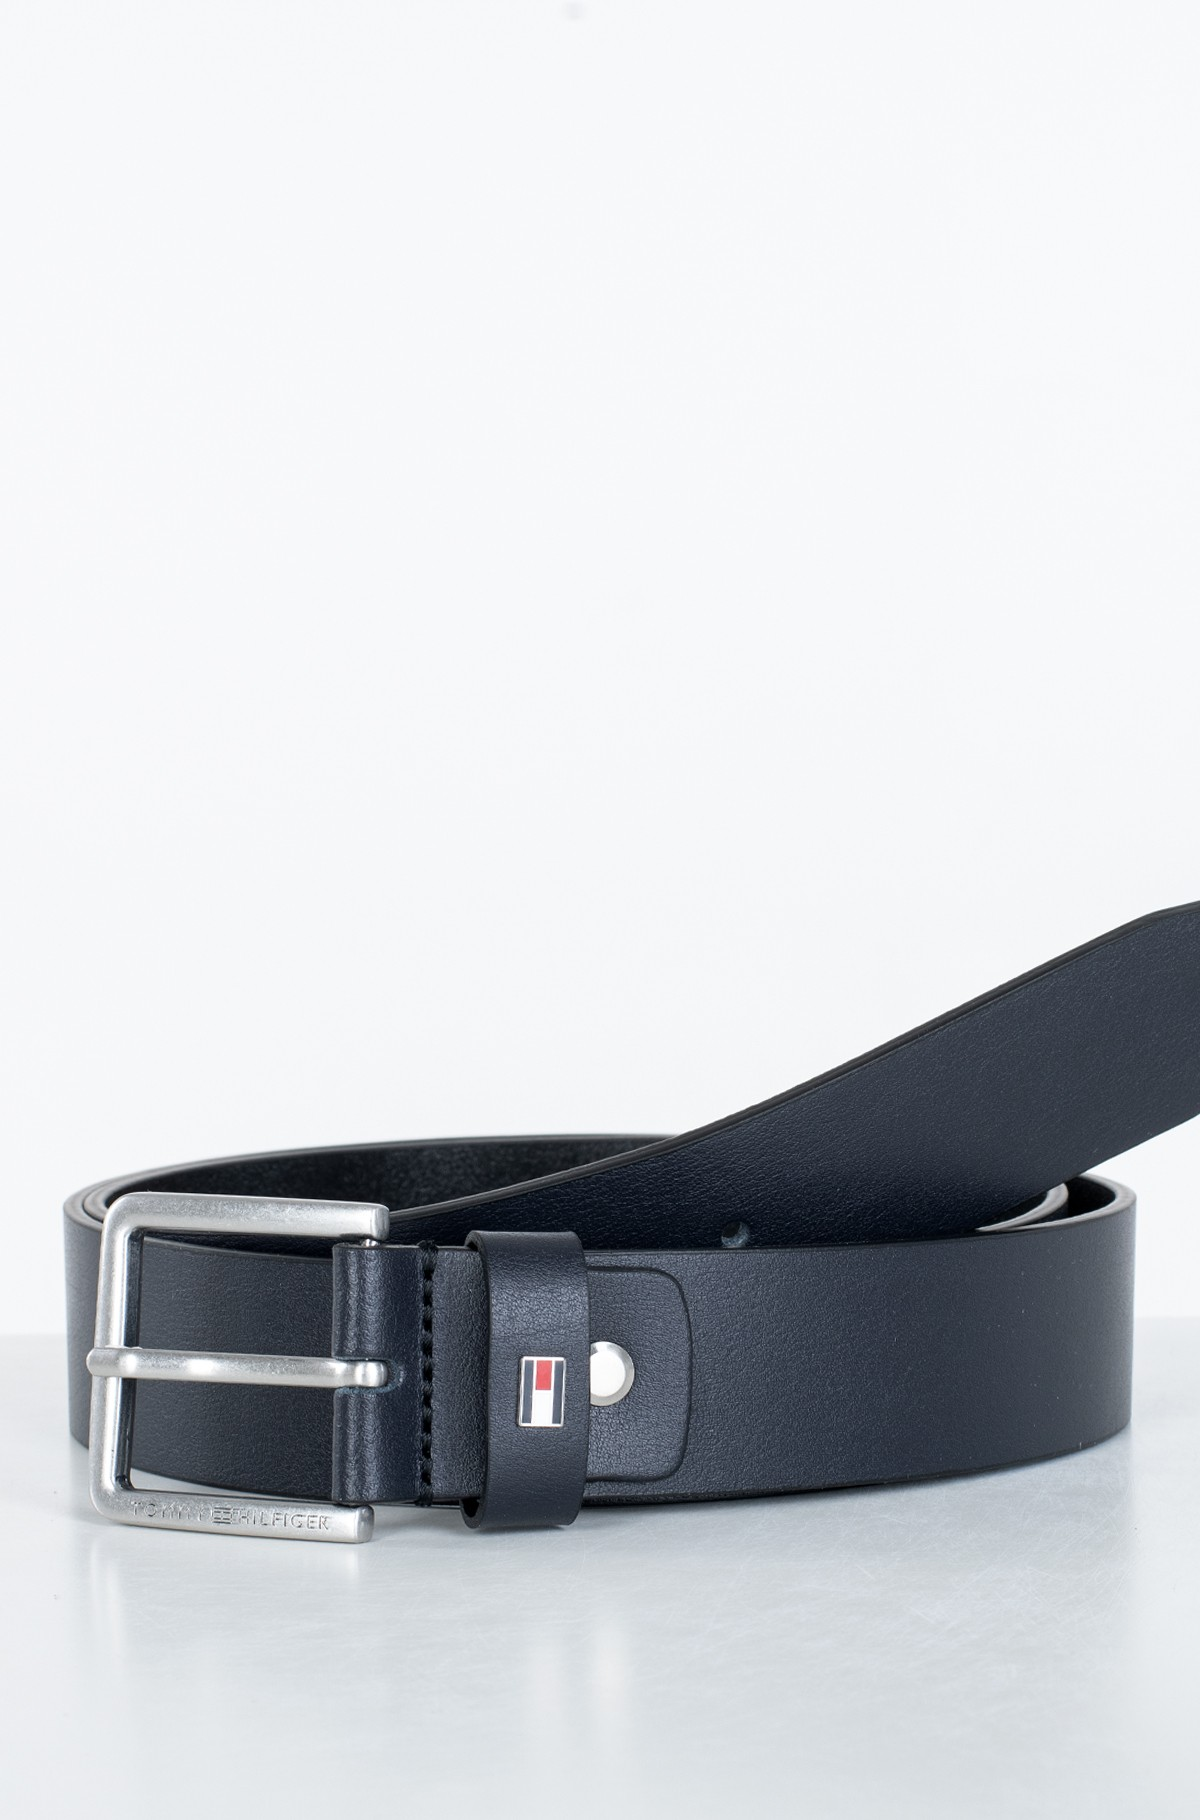 Vöö URBAN LEATHER ADJUSTABLE 3.5-full-1